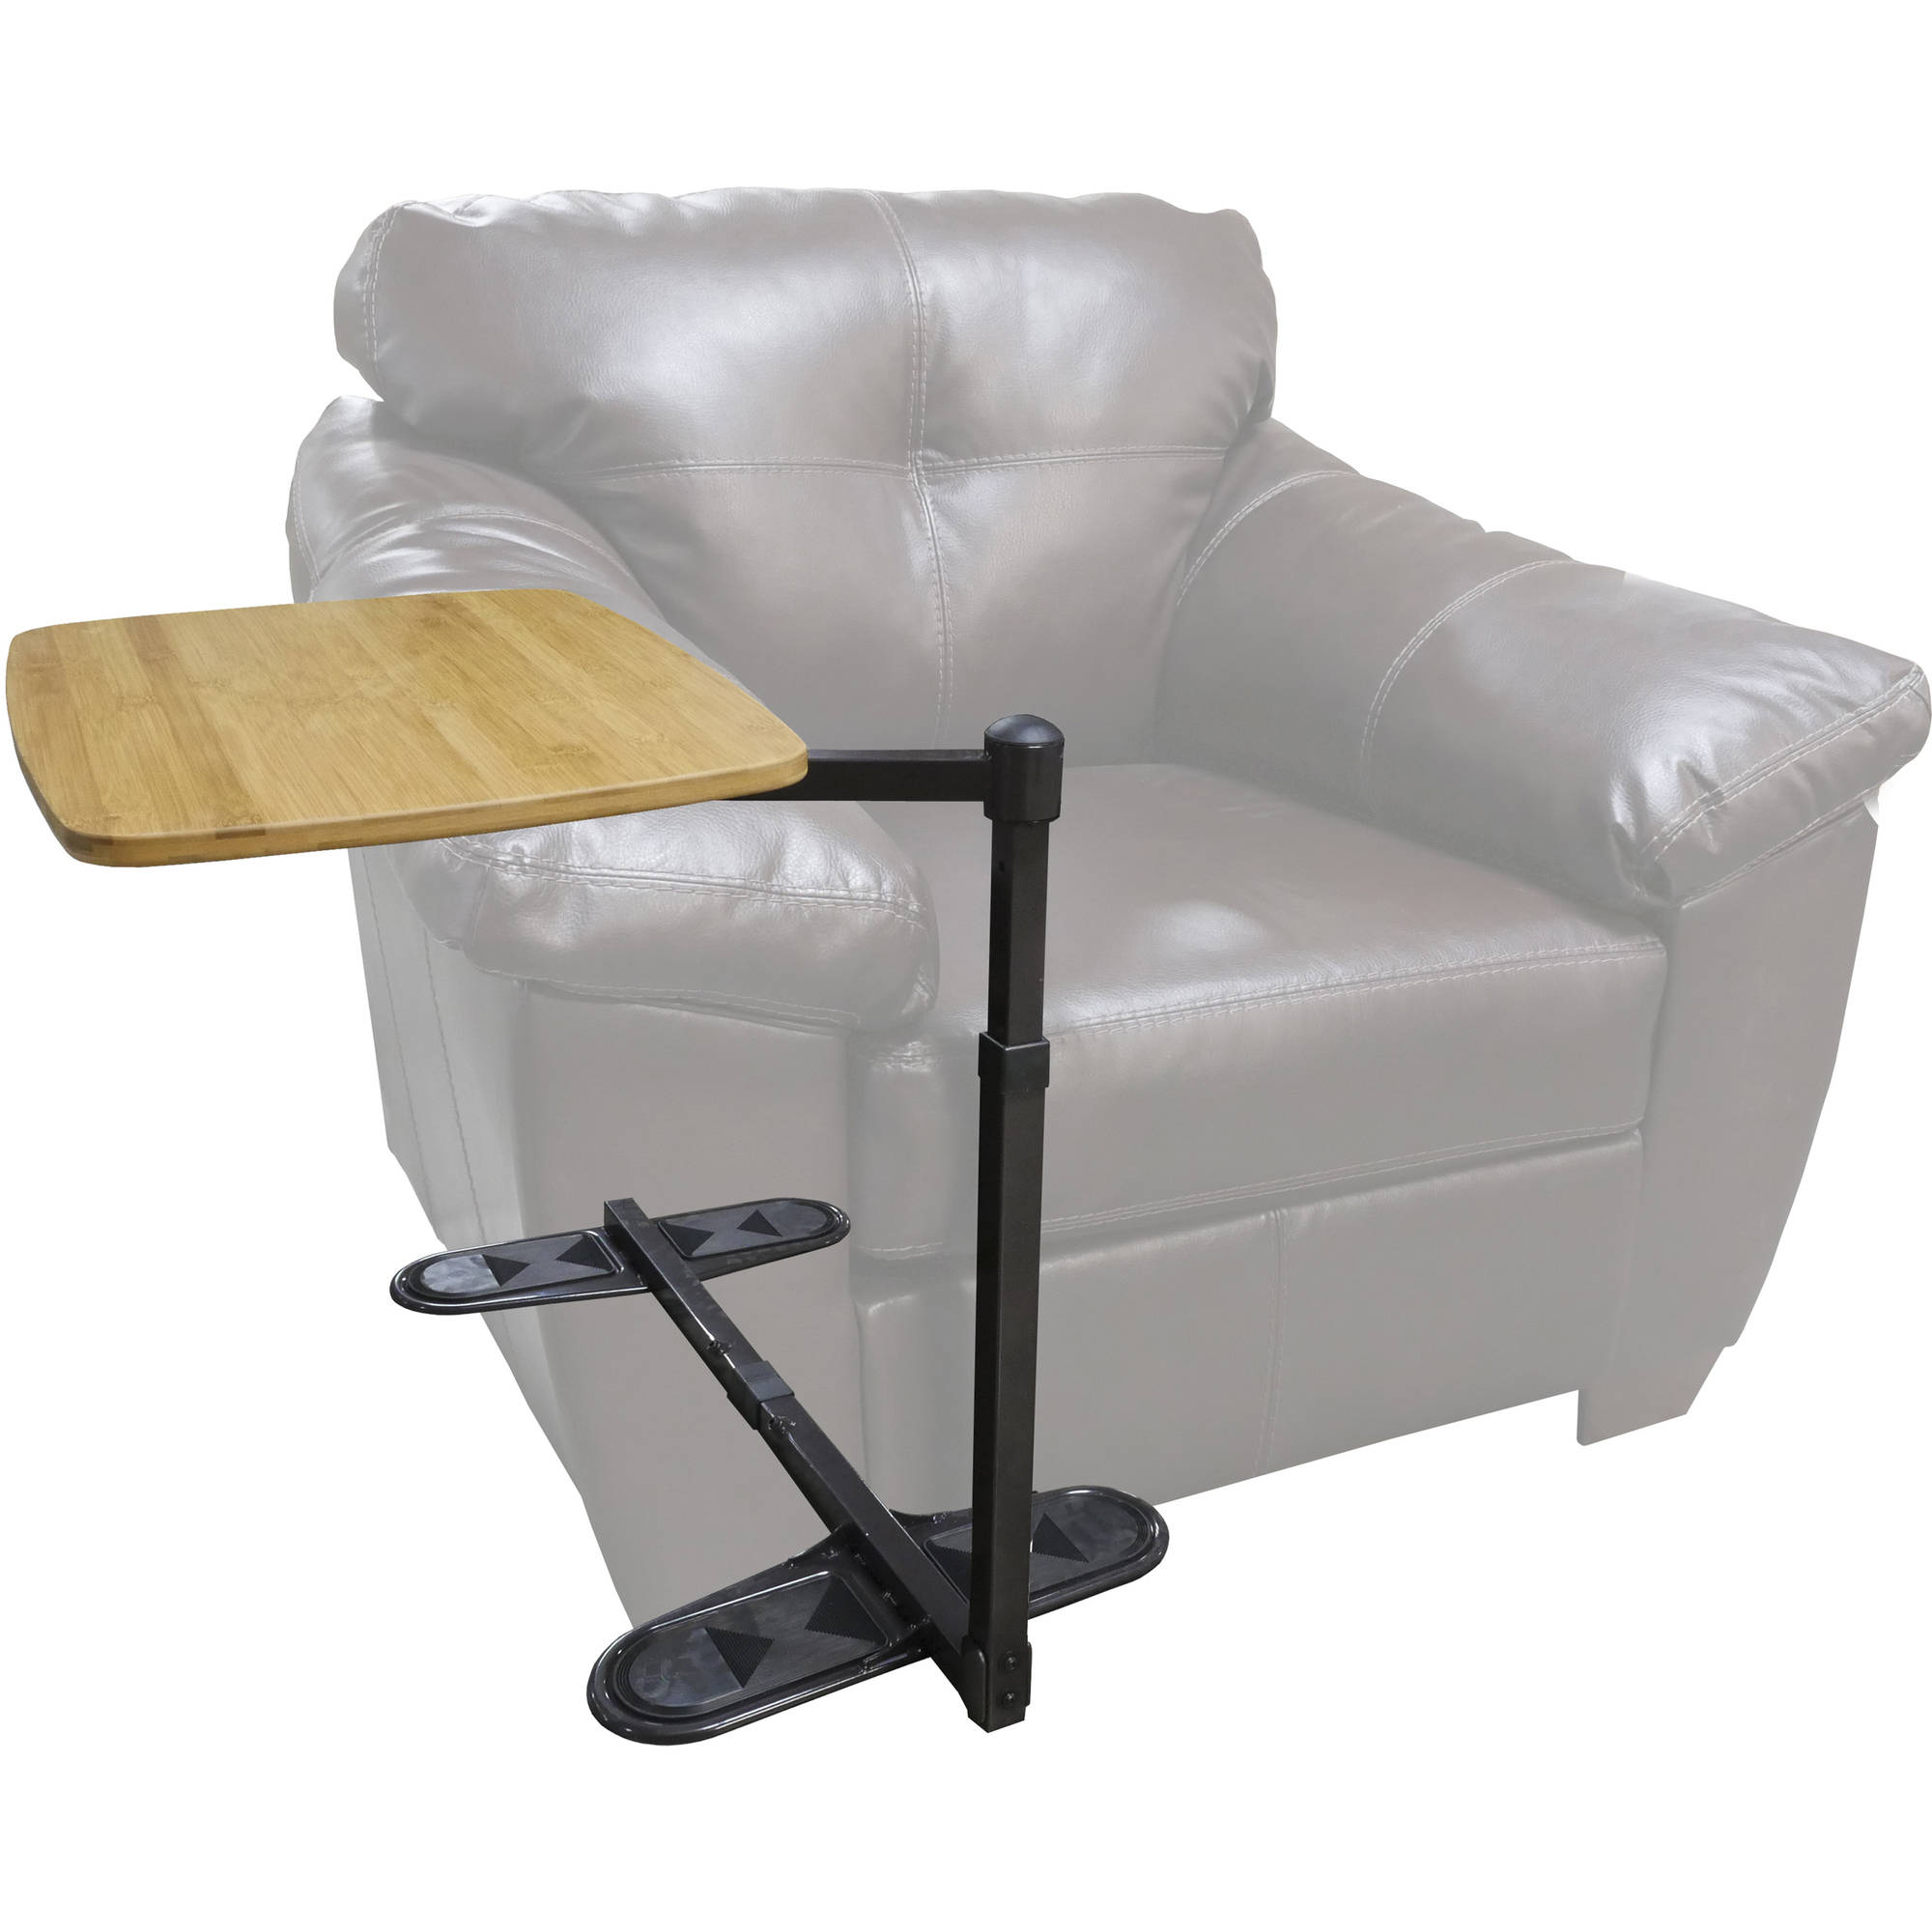 Adjustable Swivel Table Laptop Stand Computer Living Room